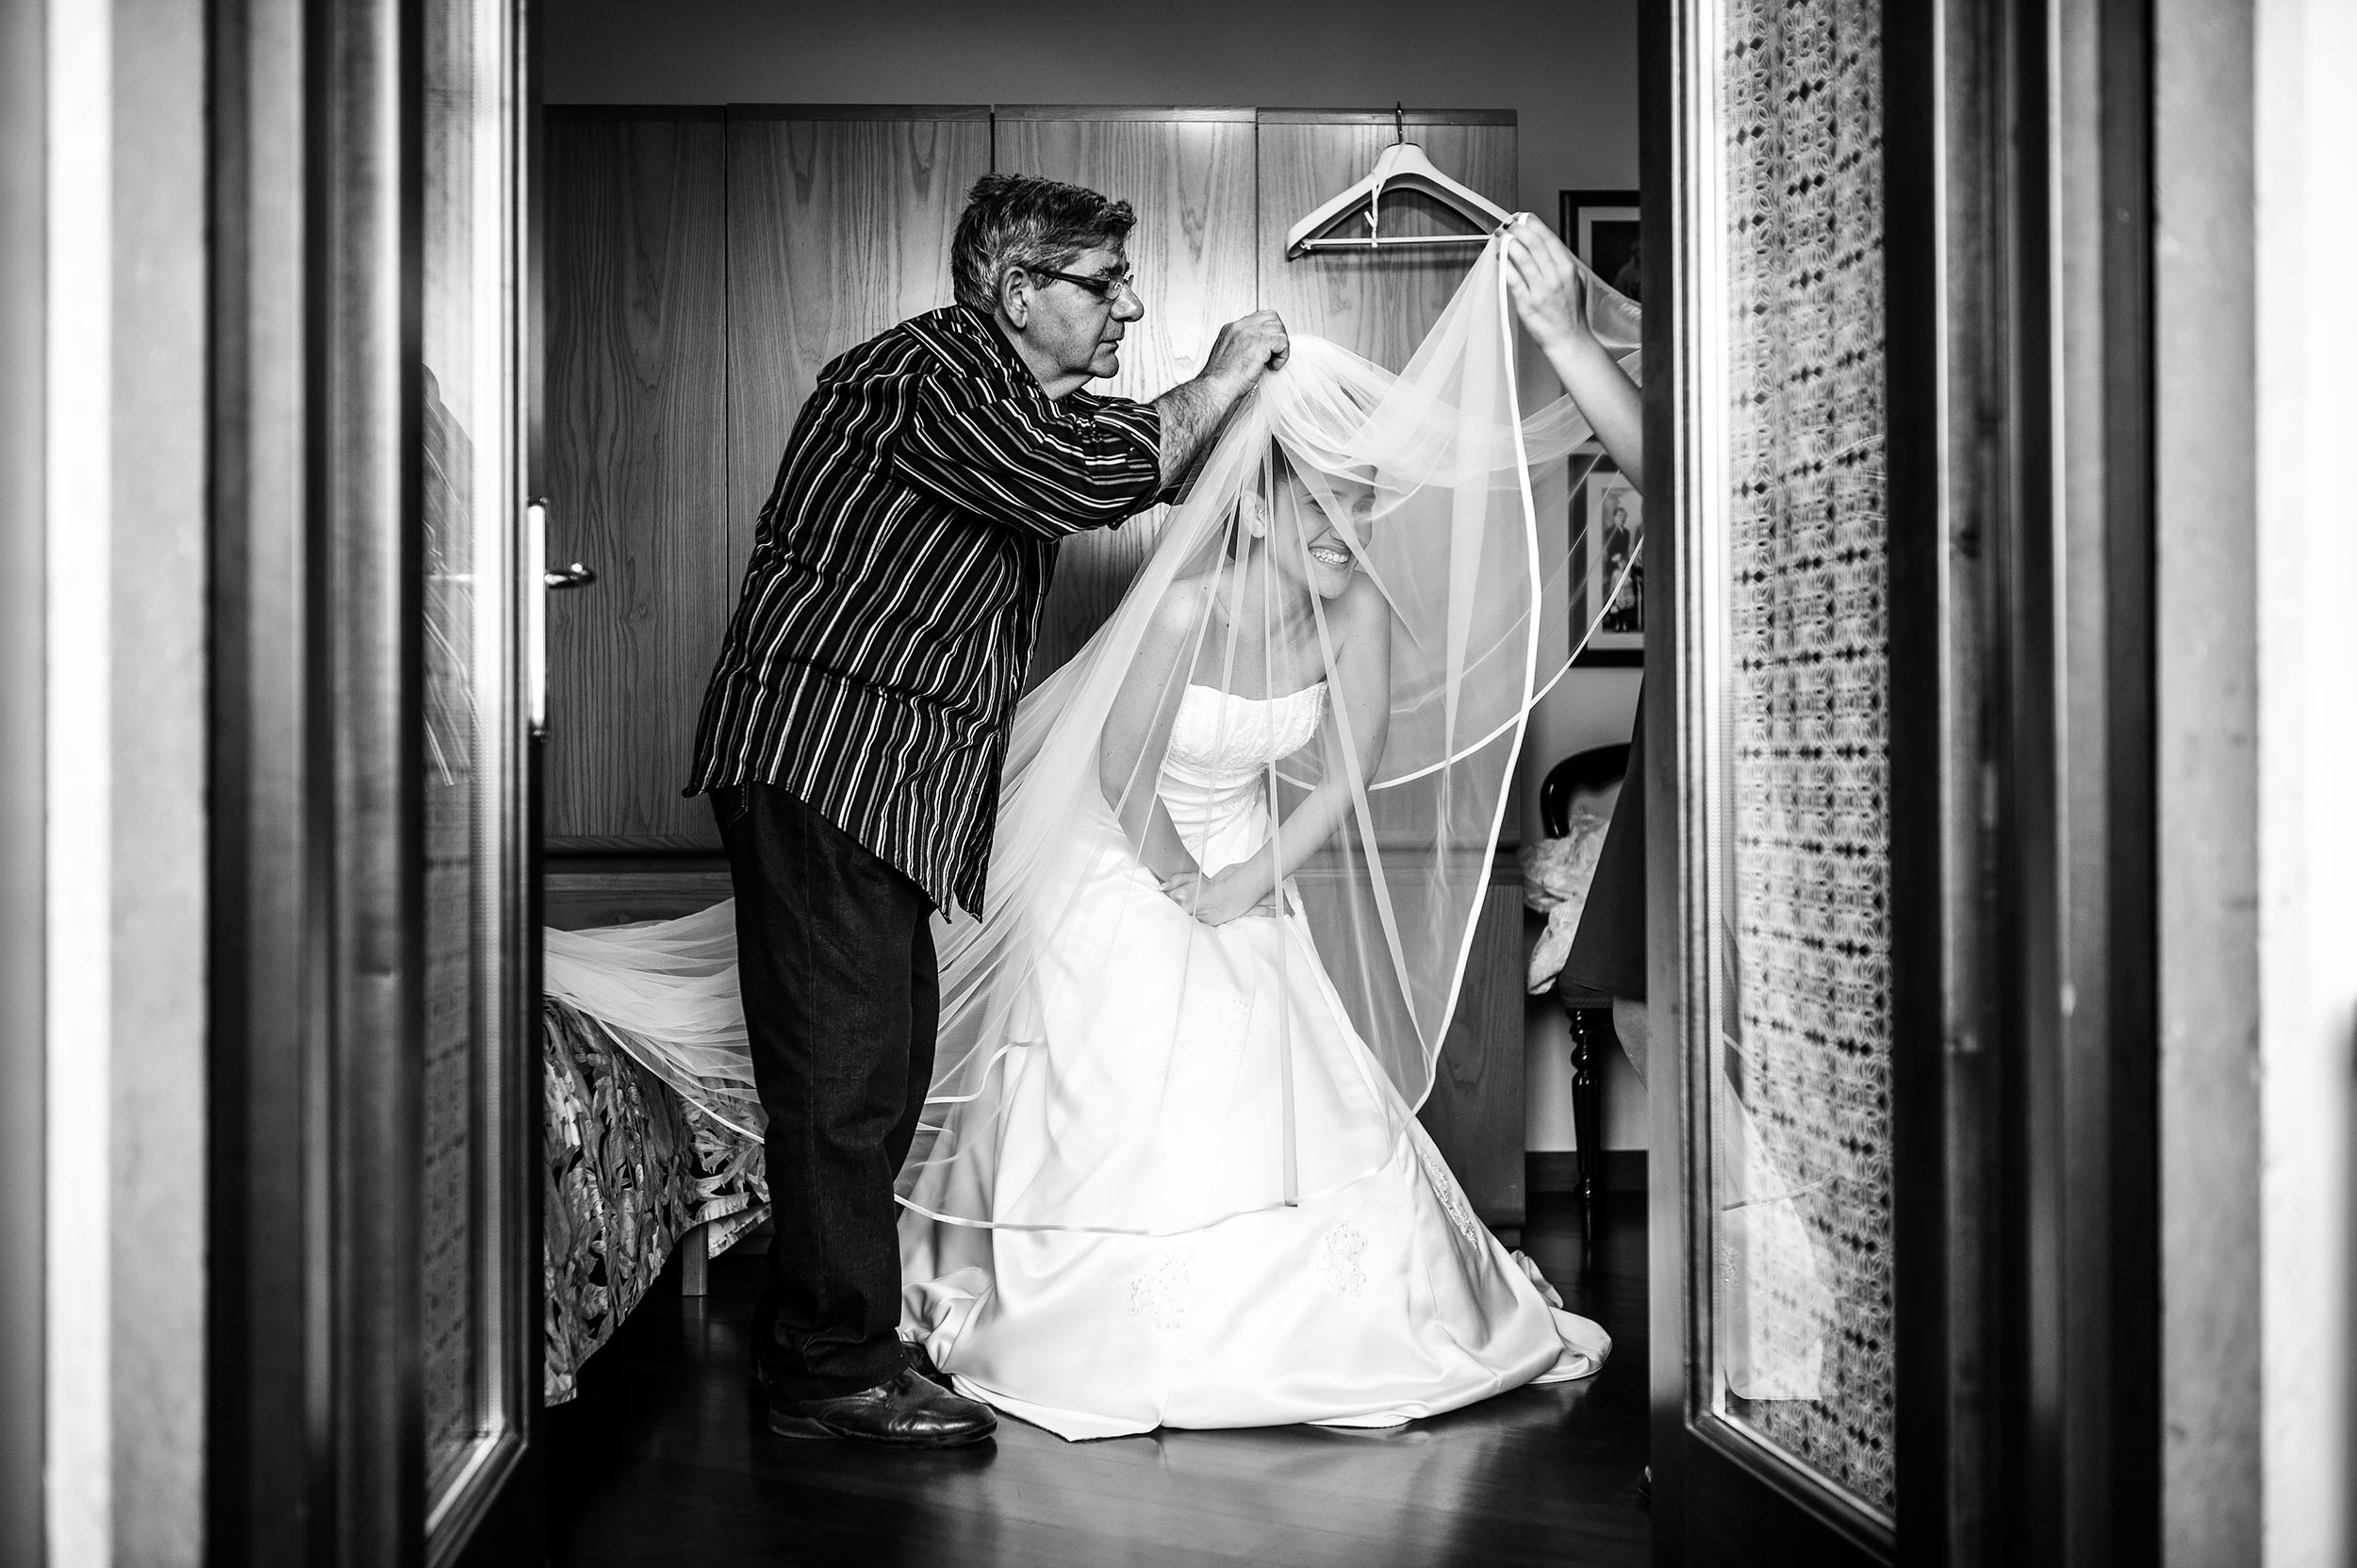 bride-getting-ready-helped-by-a-man-putting-the-veil-on-black-and-white-wedding-photography.jpg